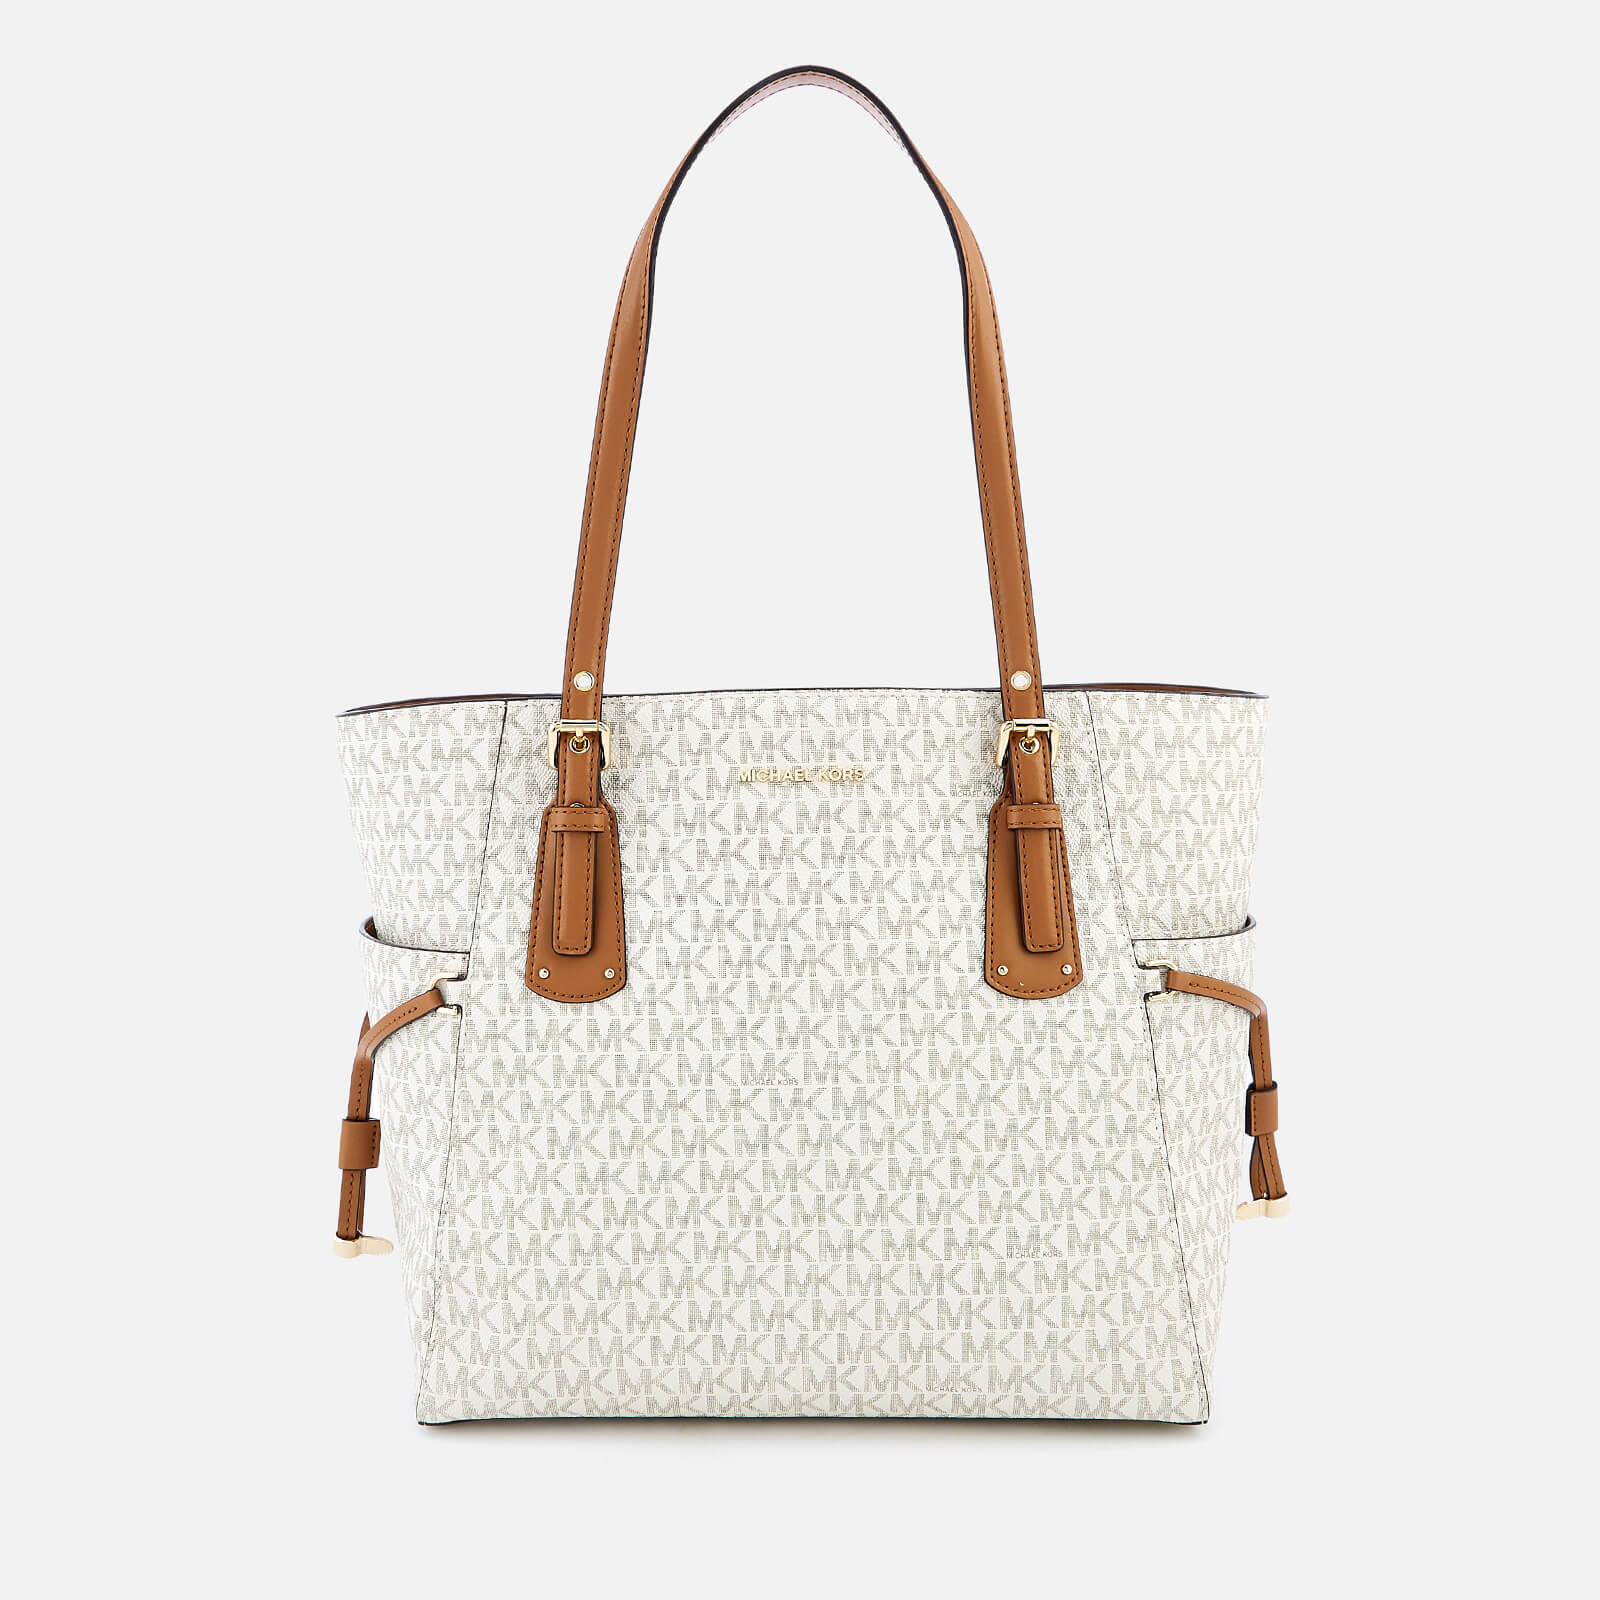 eb1dfd93a7 MICHAEL MICHAEL KORS Women s Voyager East West Tote Bag - Vanilla - Free UK  Delivery over £50